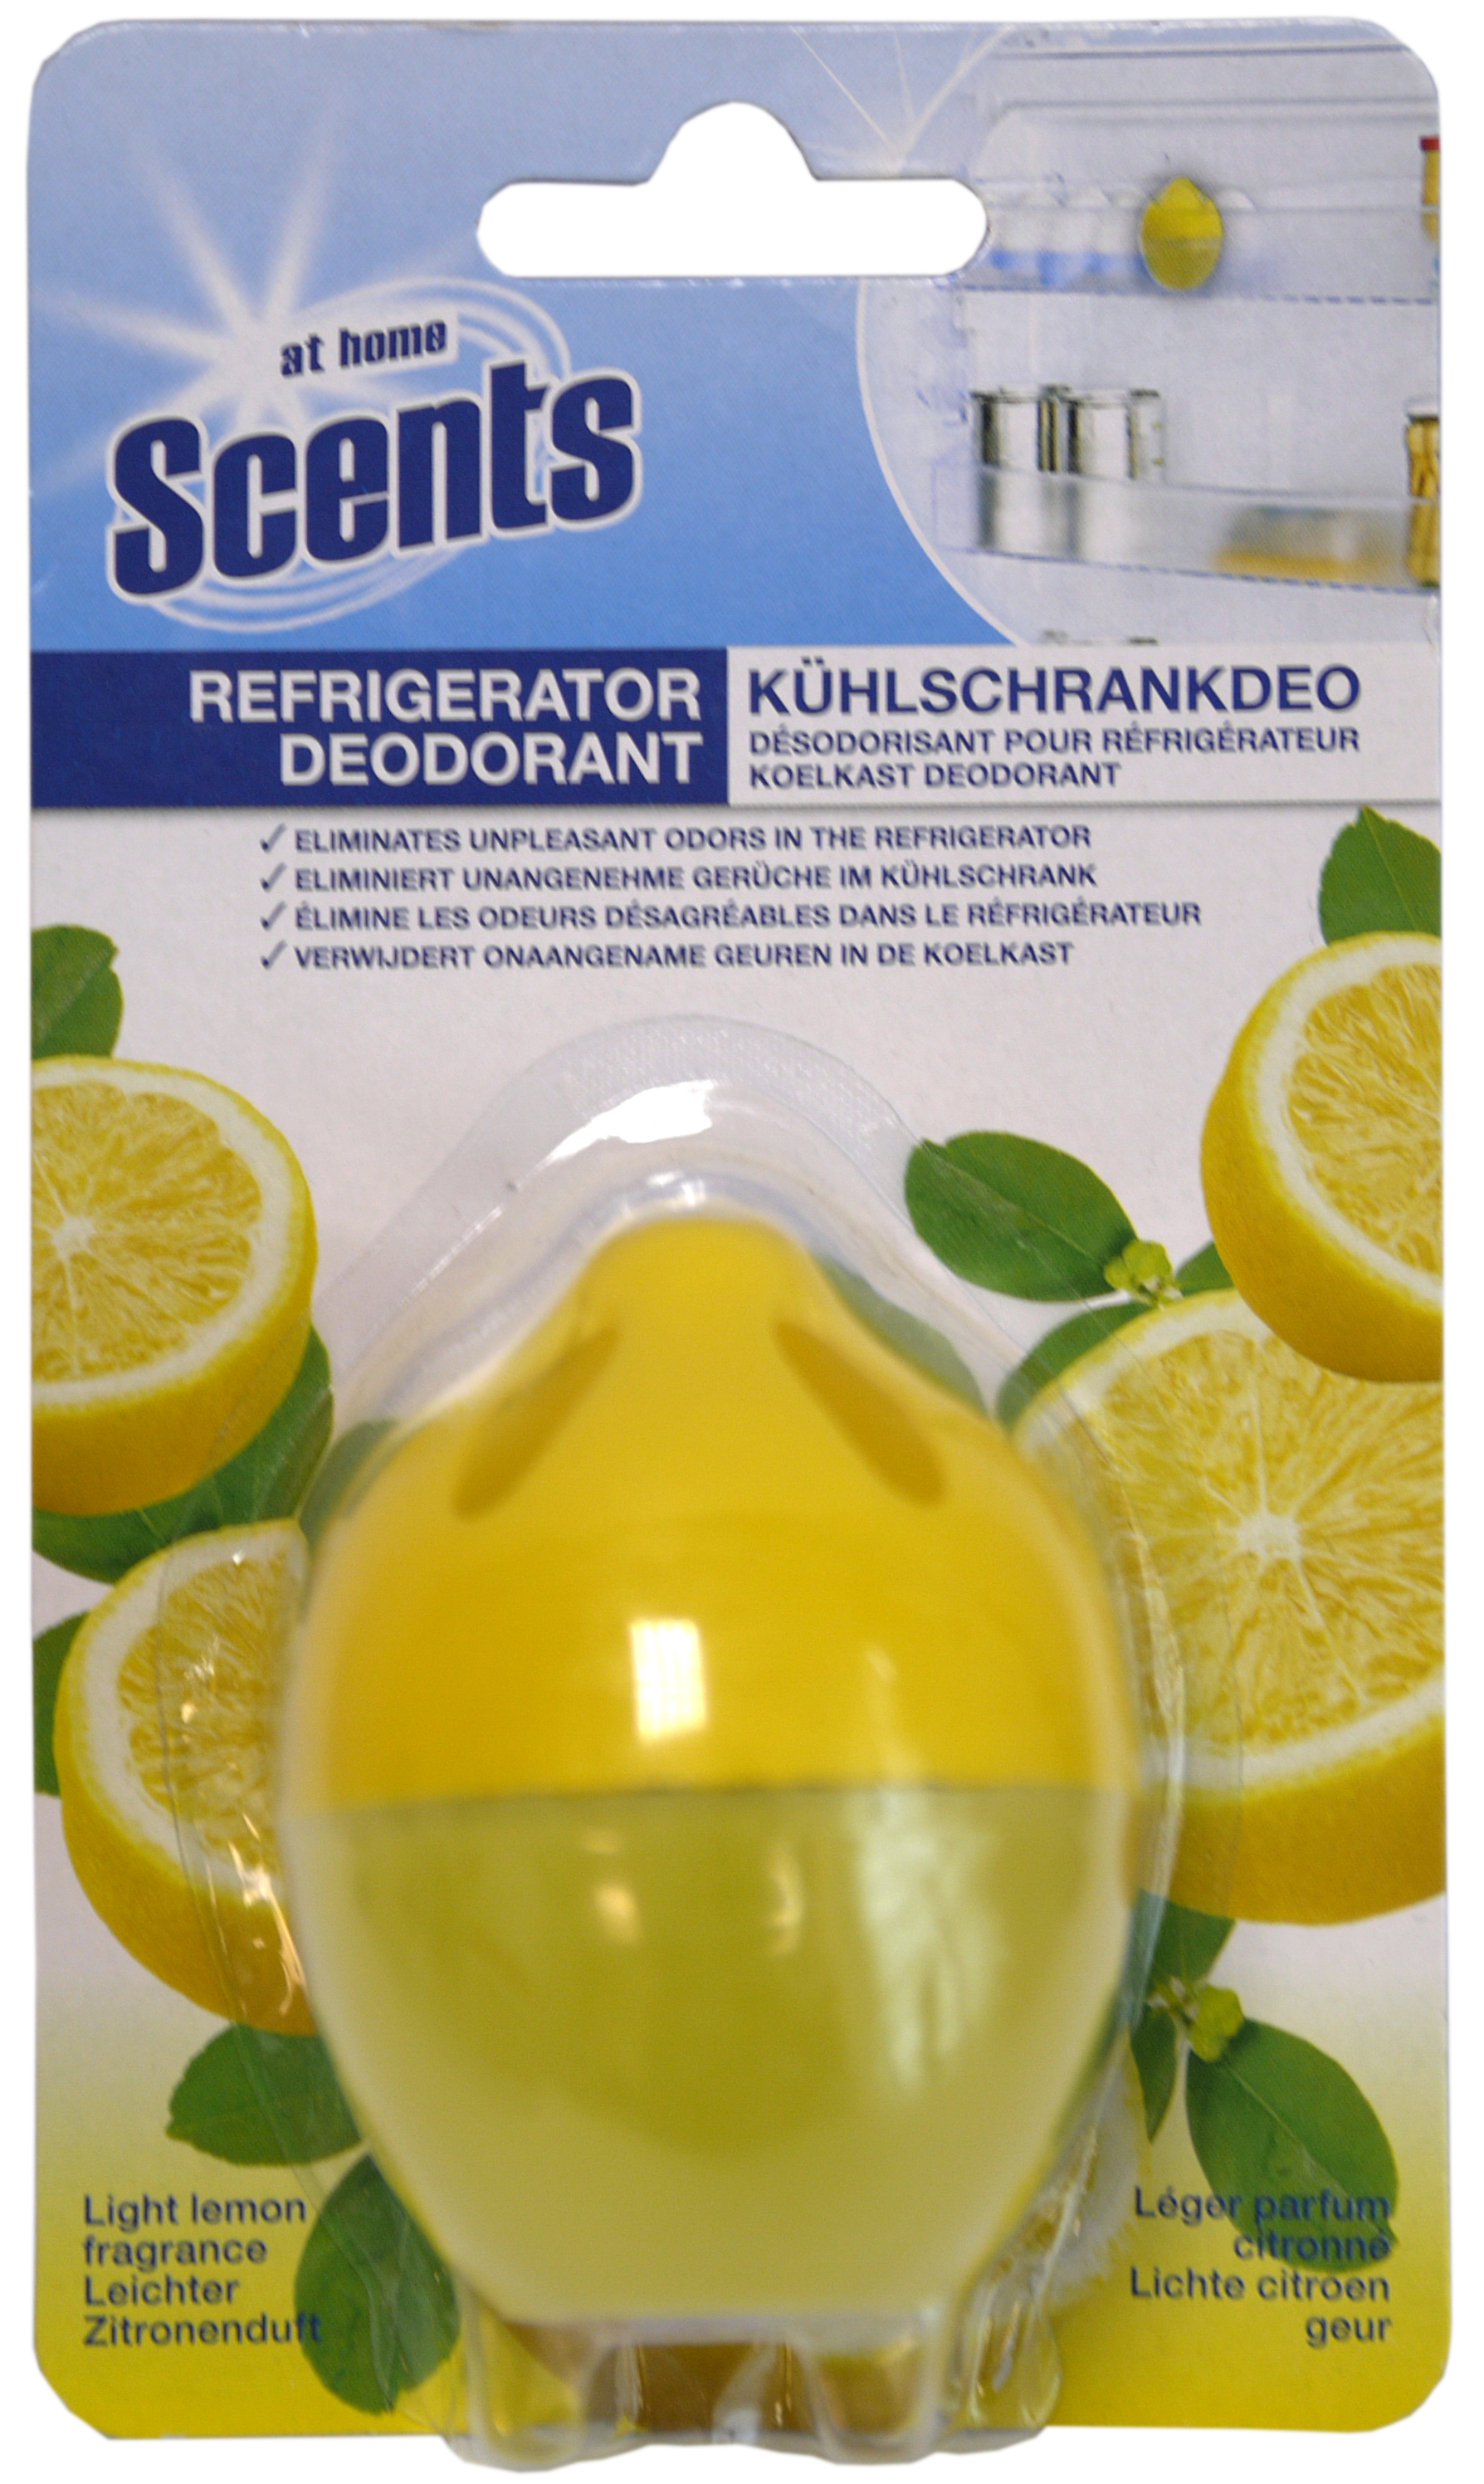 00527 - Refrigerator deodorant 30 g - light lemon